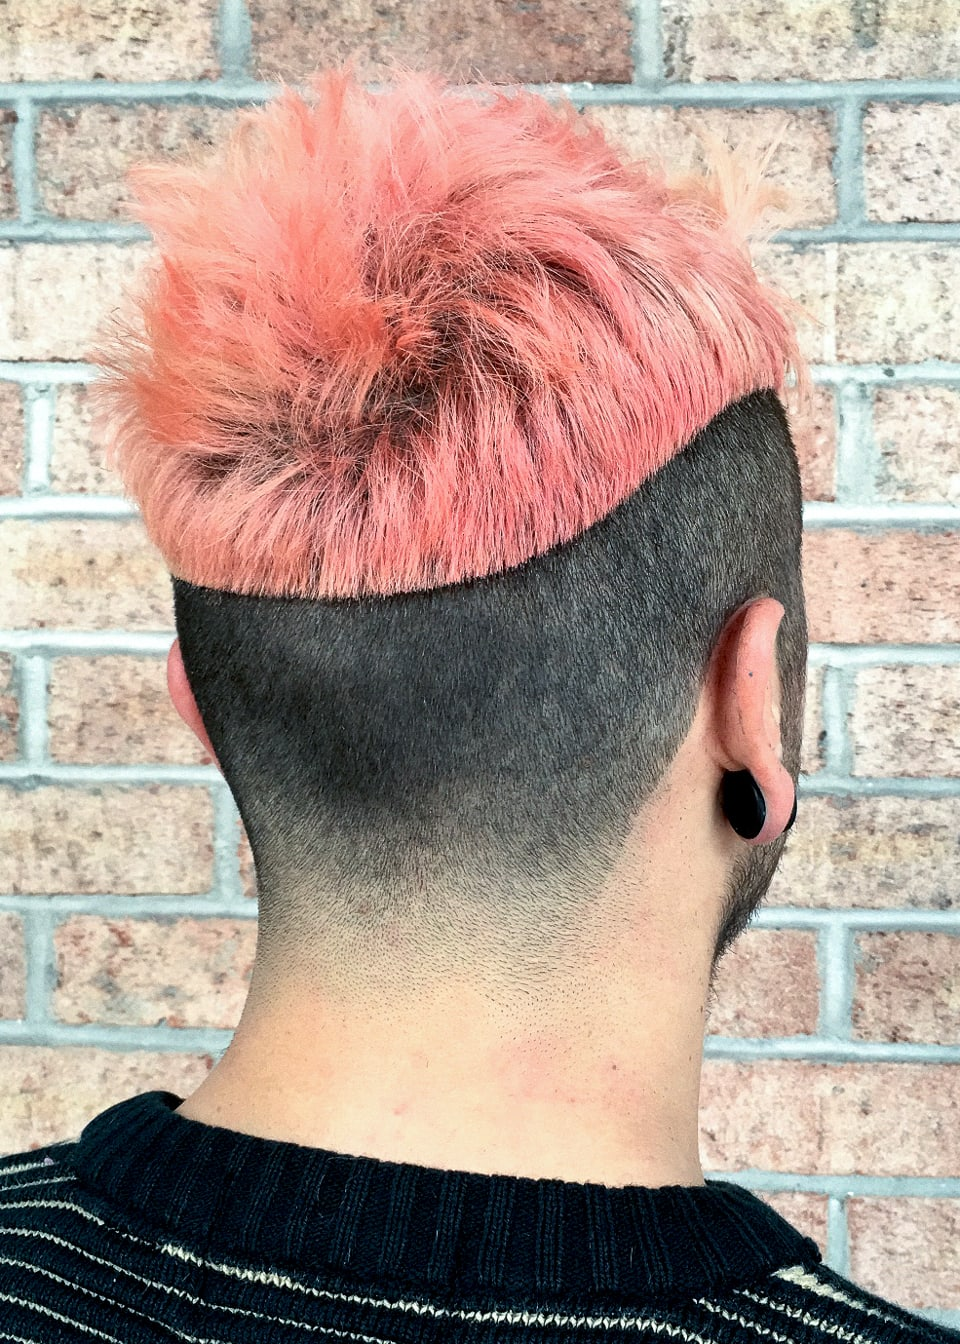 Mens hair color tribeca salons Ybor City Tampa